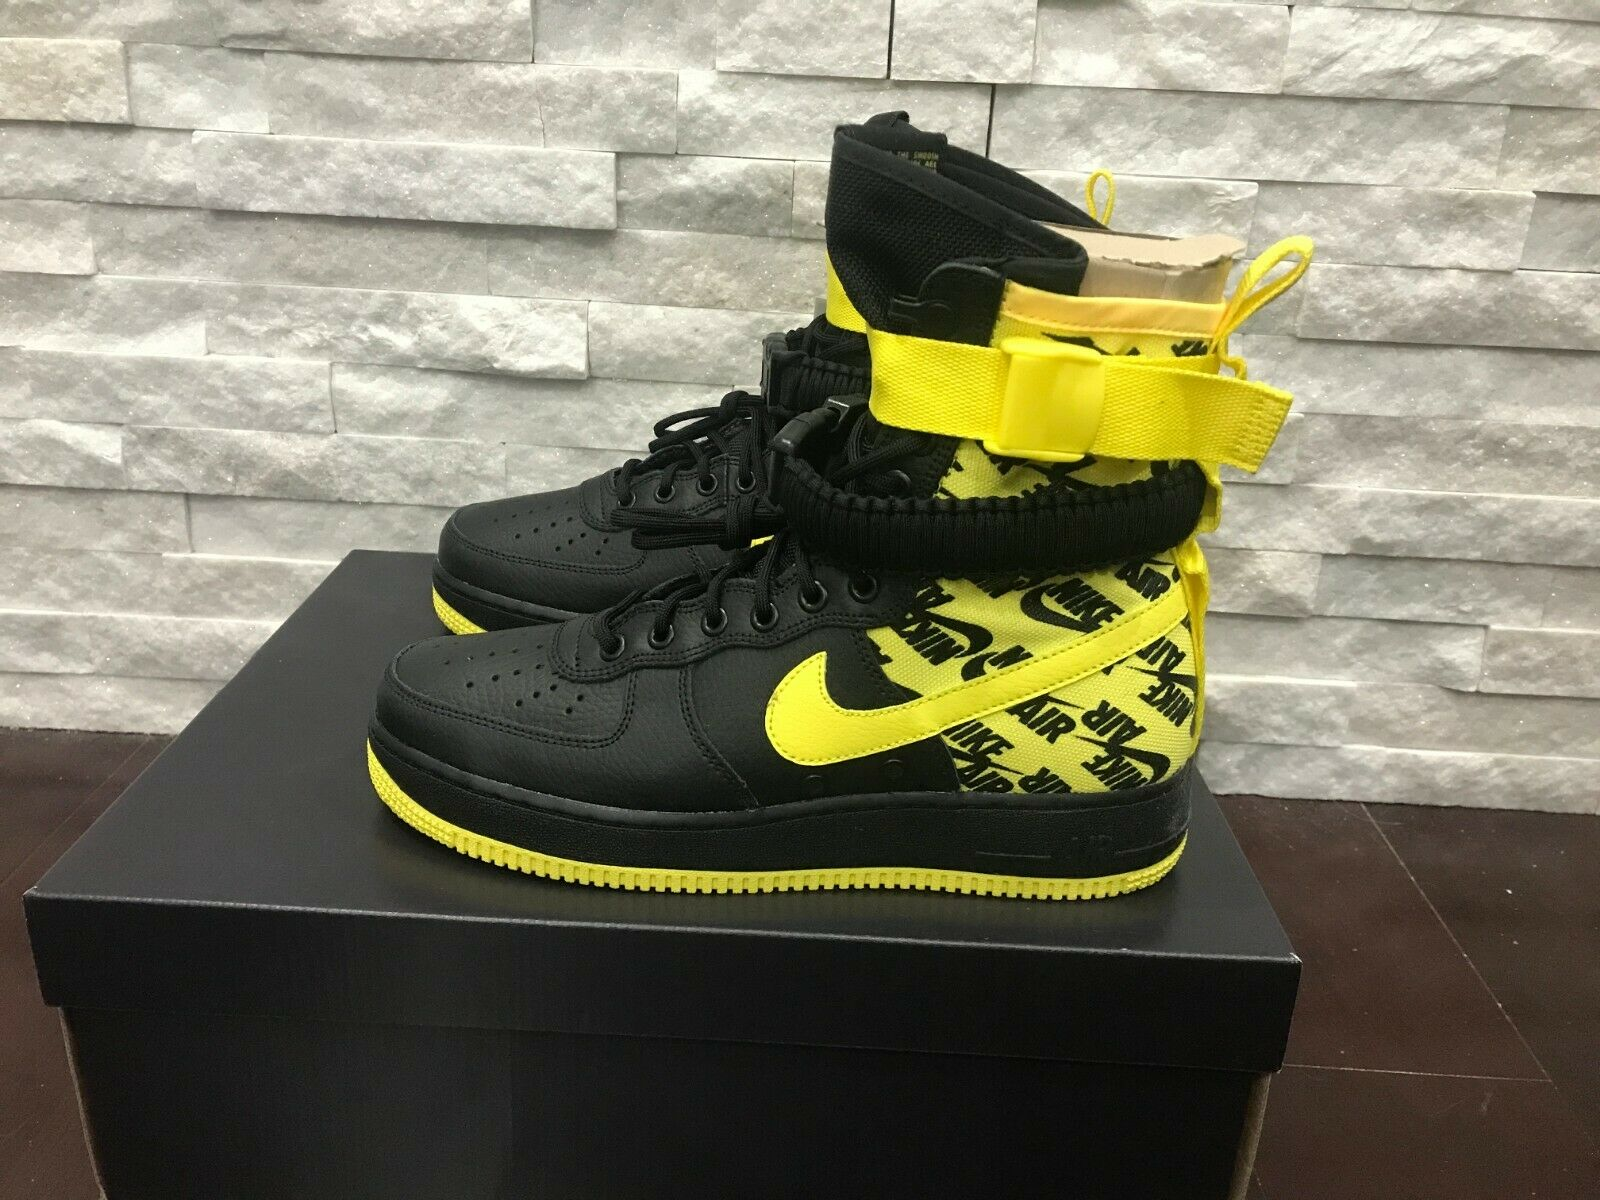 Nike SF AIR FORCE 1 shoes Black Dynamic Yellow AR1955-001 Mens Size 9 New